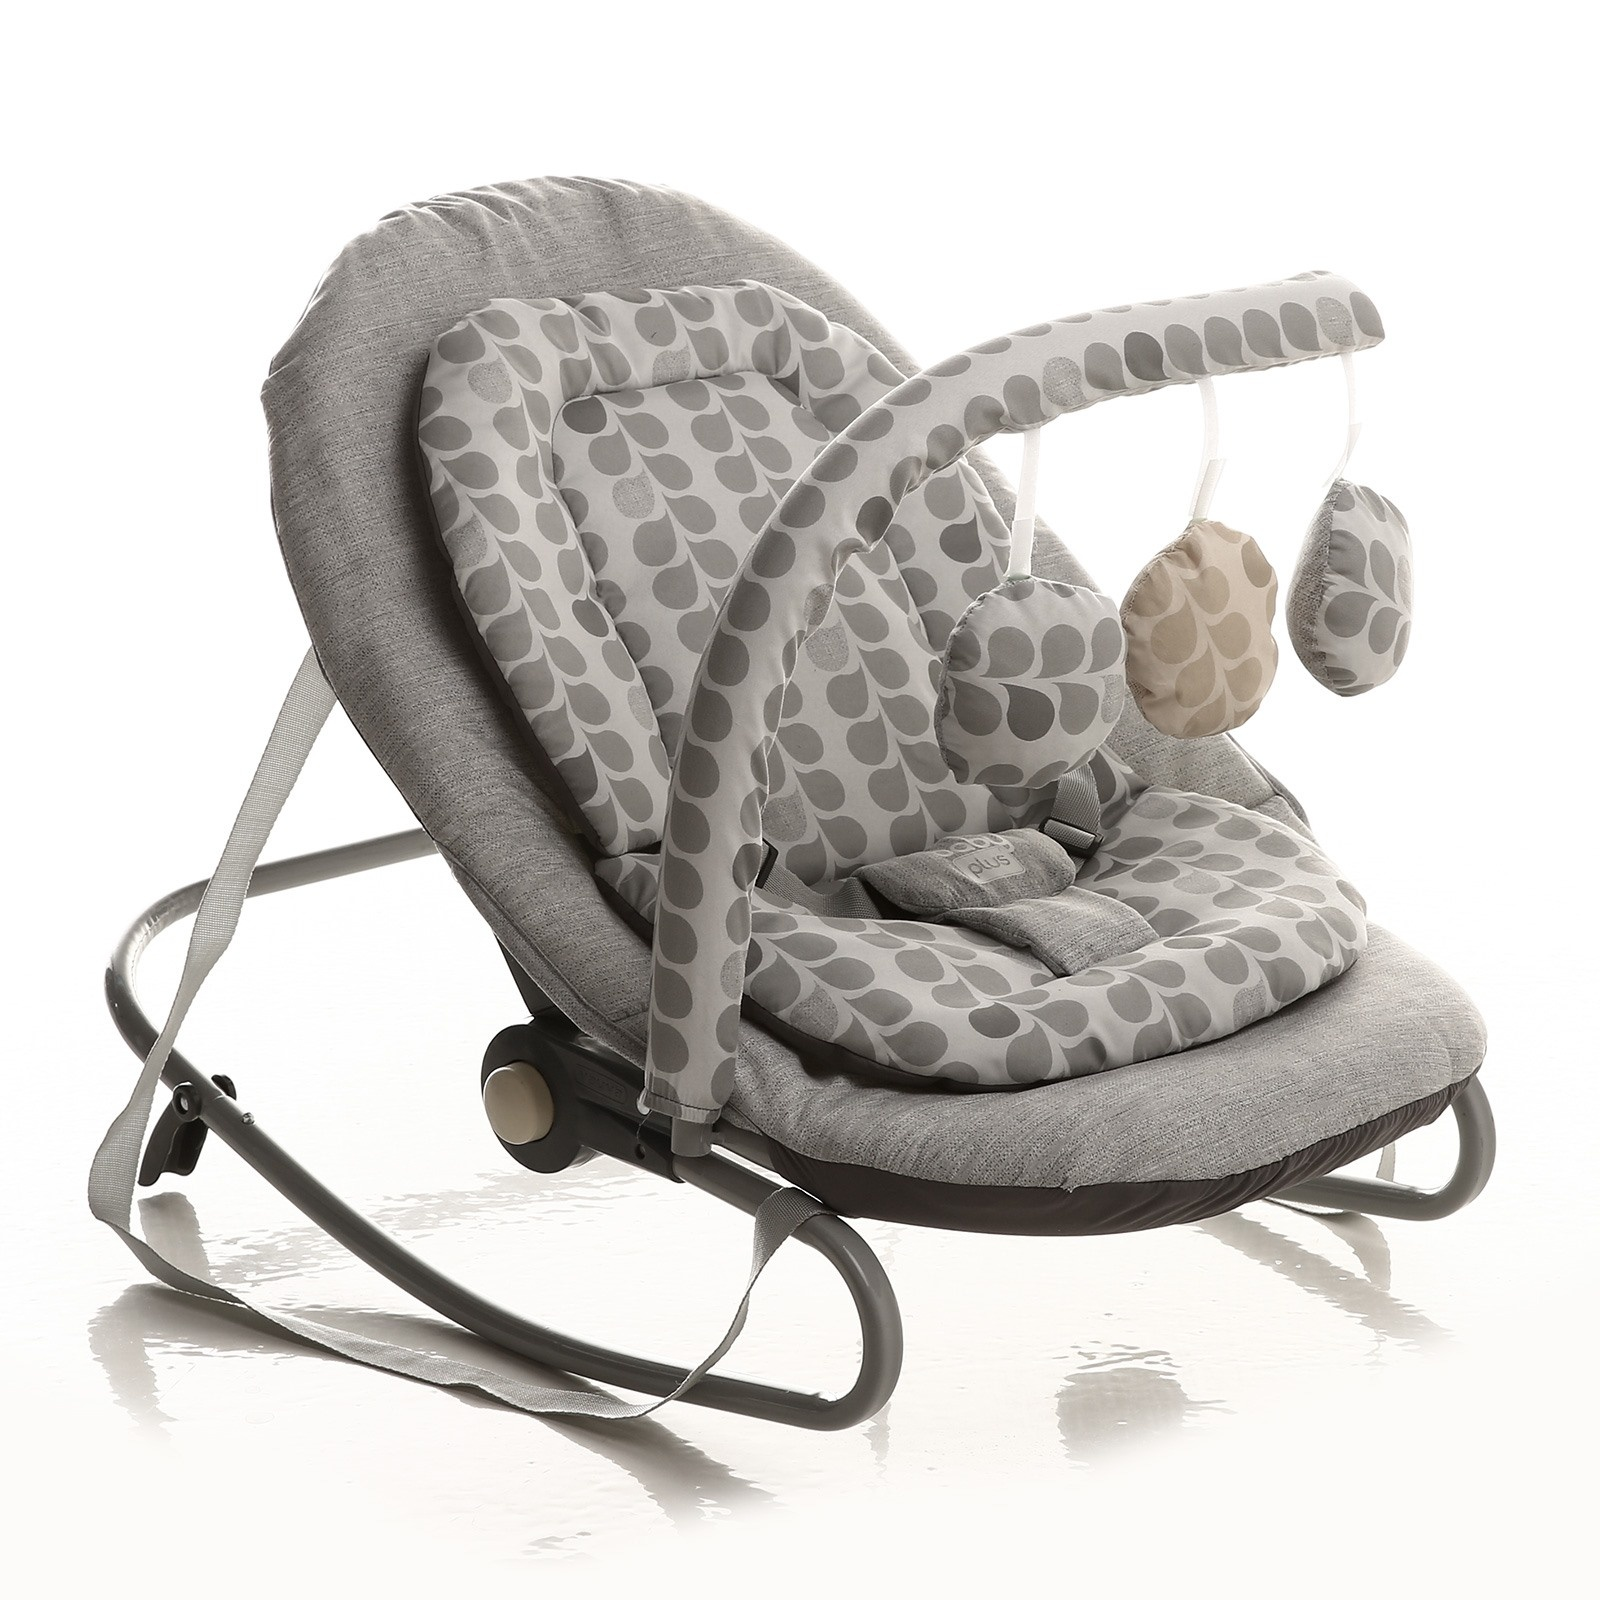 Ebebek Baby Plus Lounge Baby Bouncer Chair With Toys